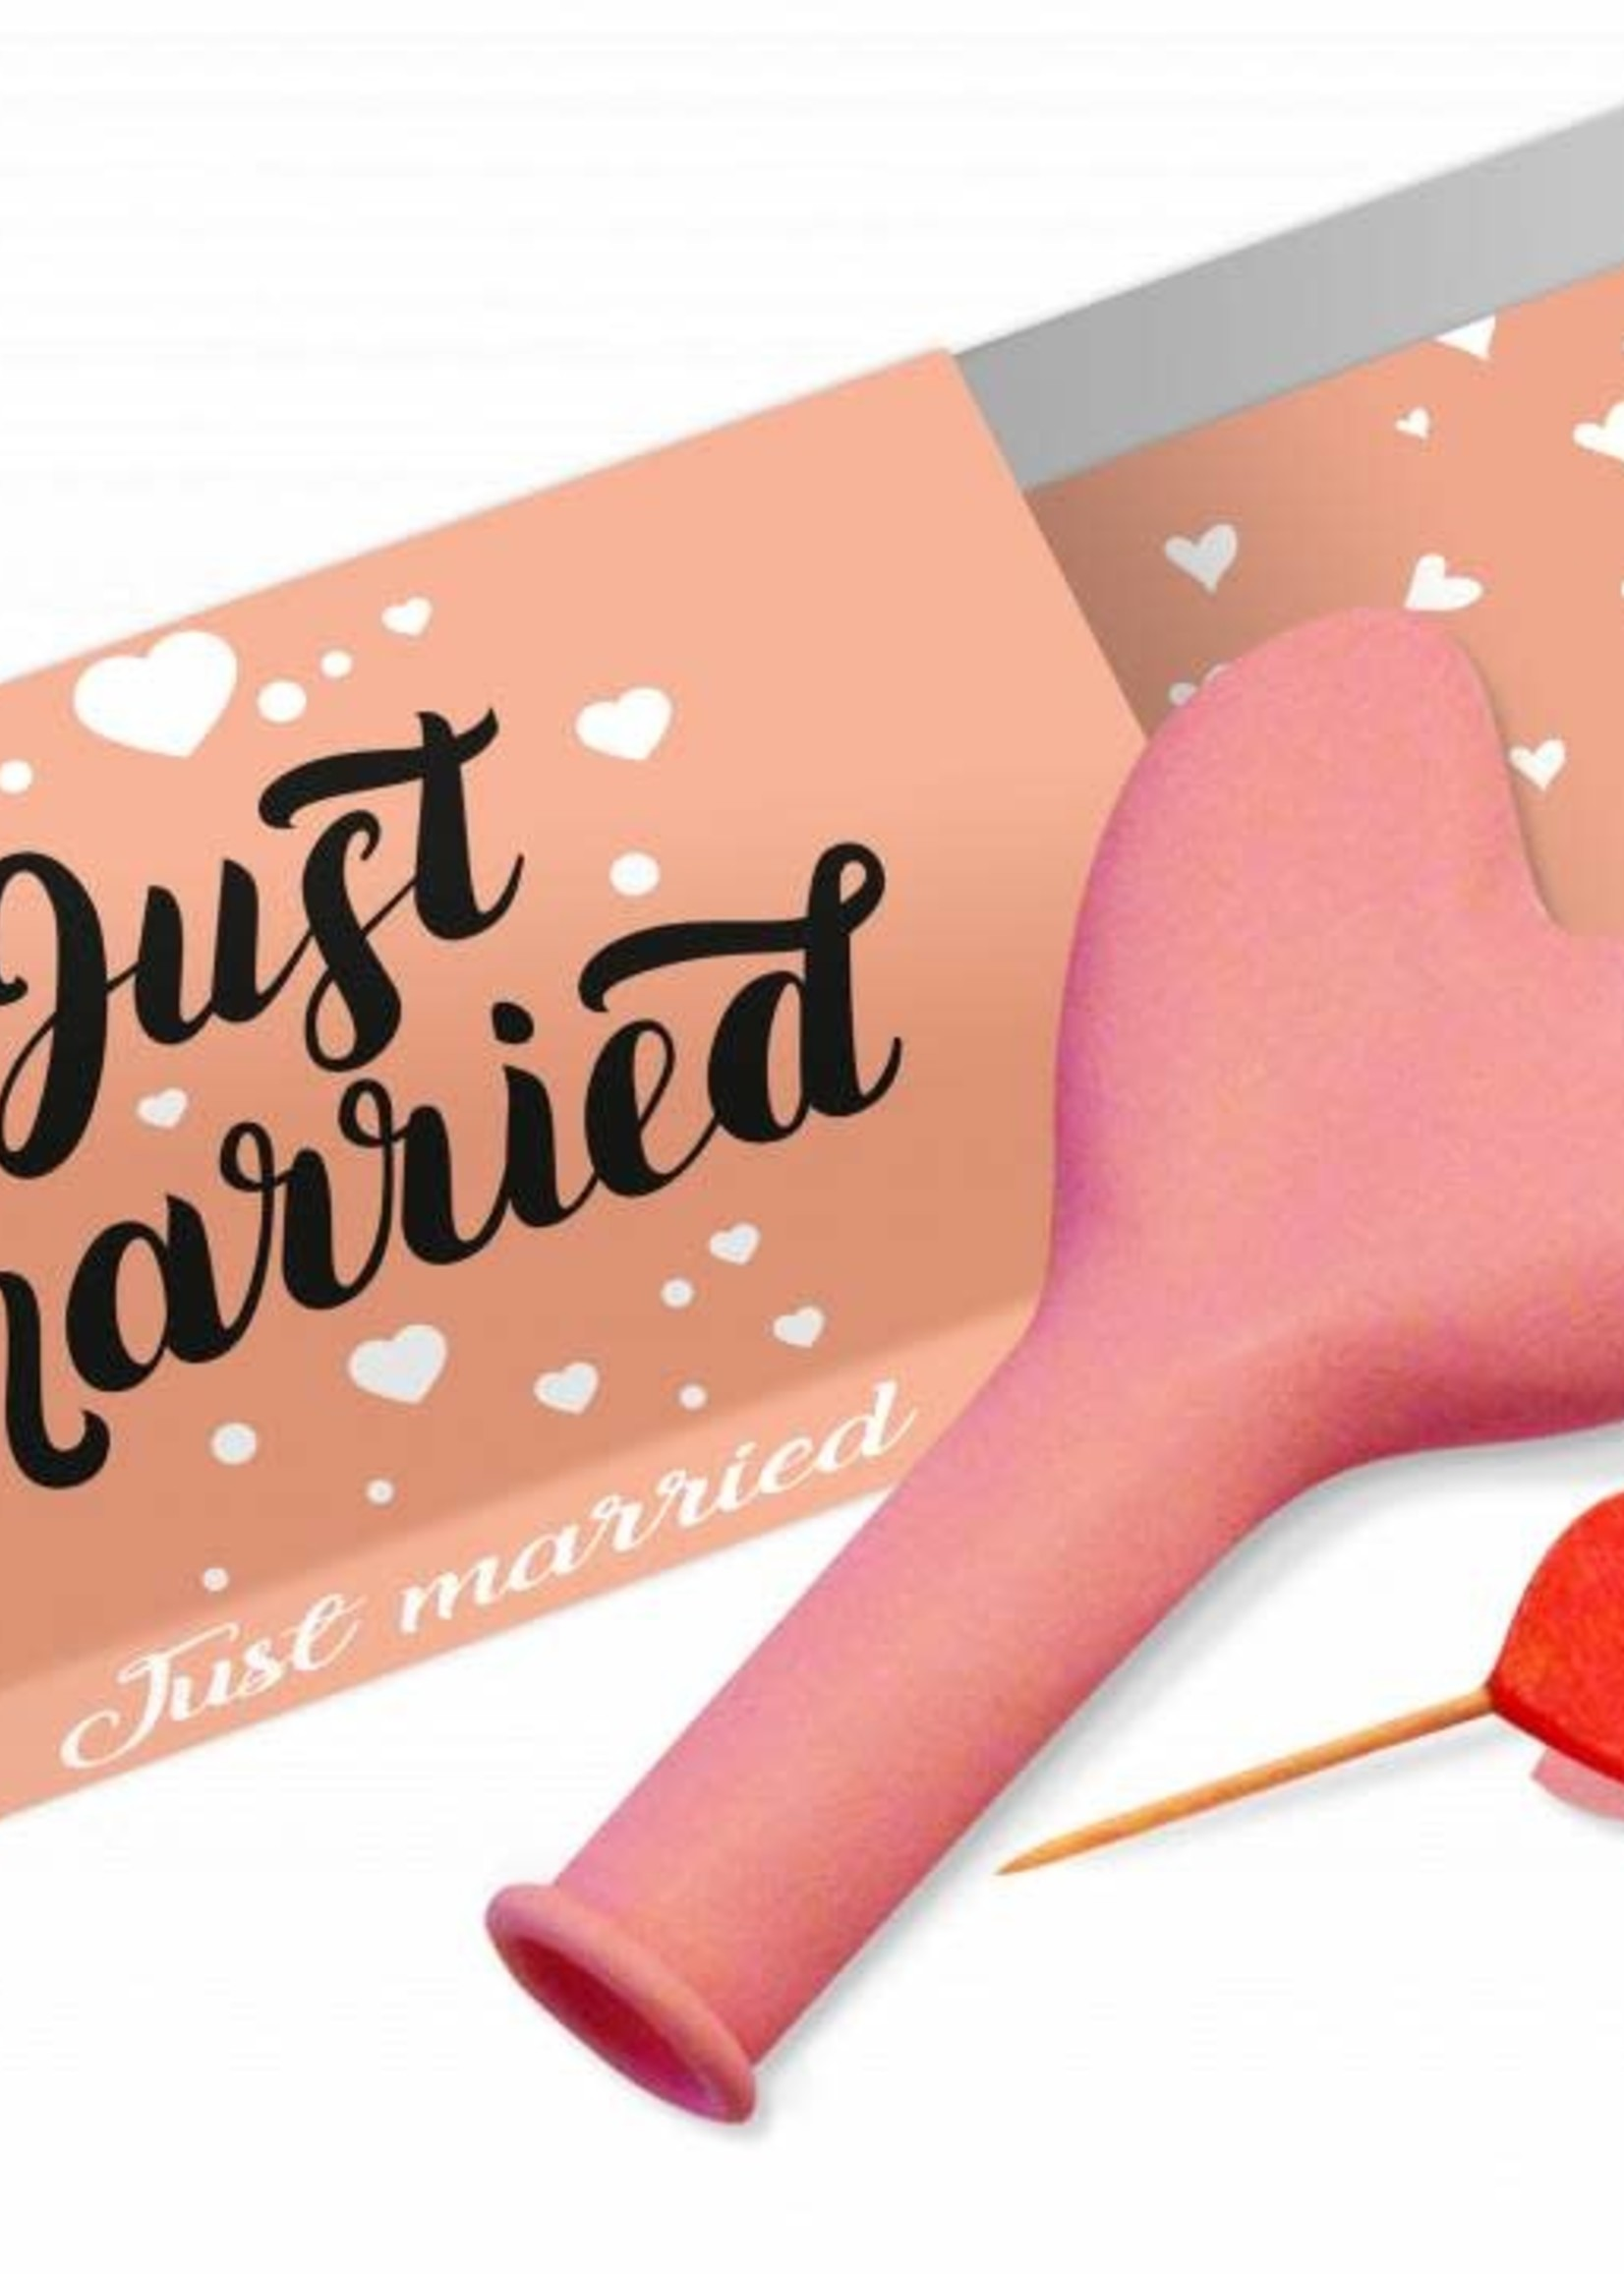 JUST MARRIED giftbox